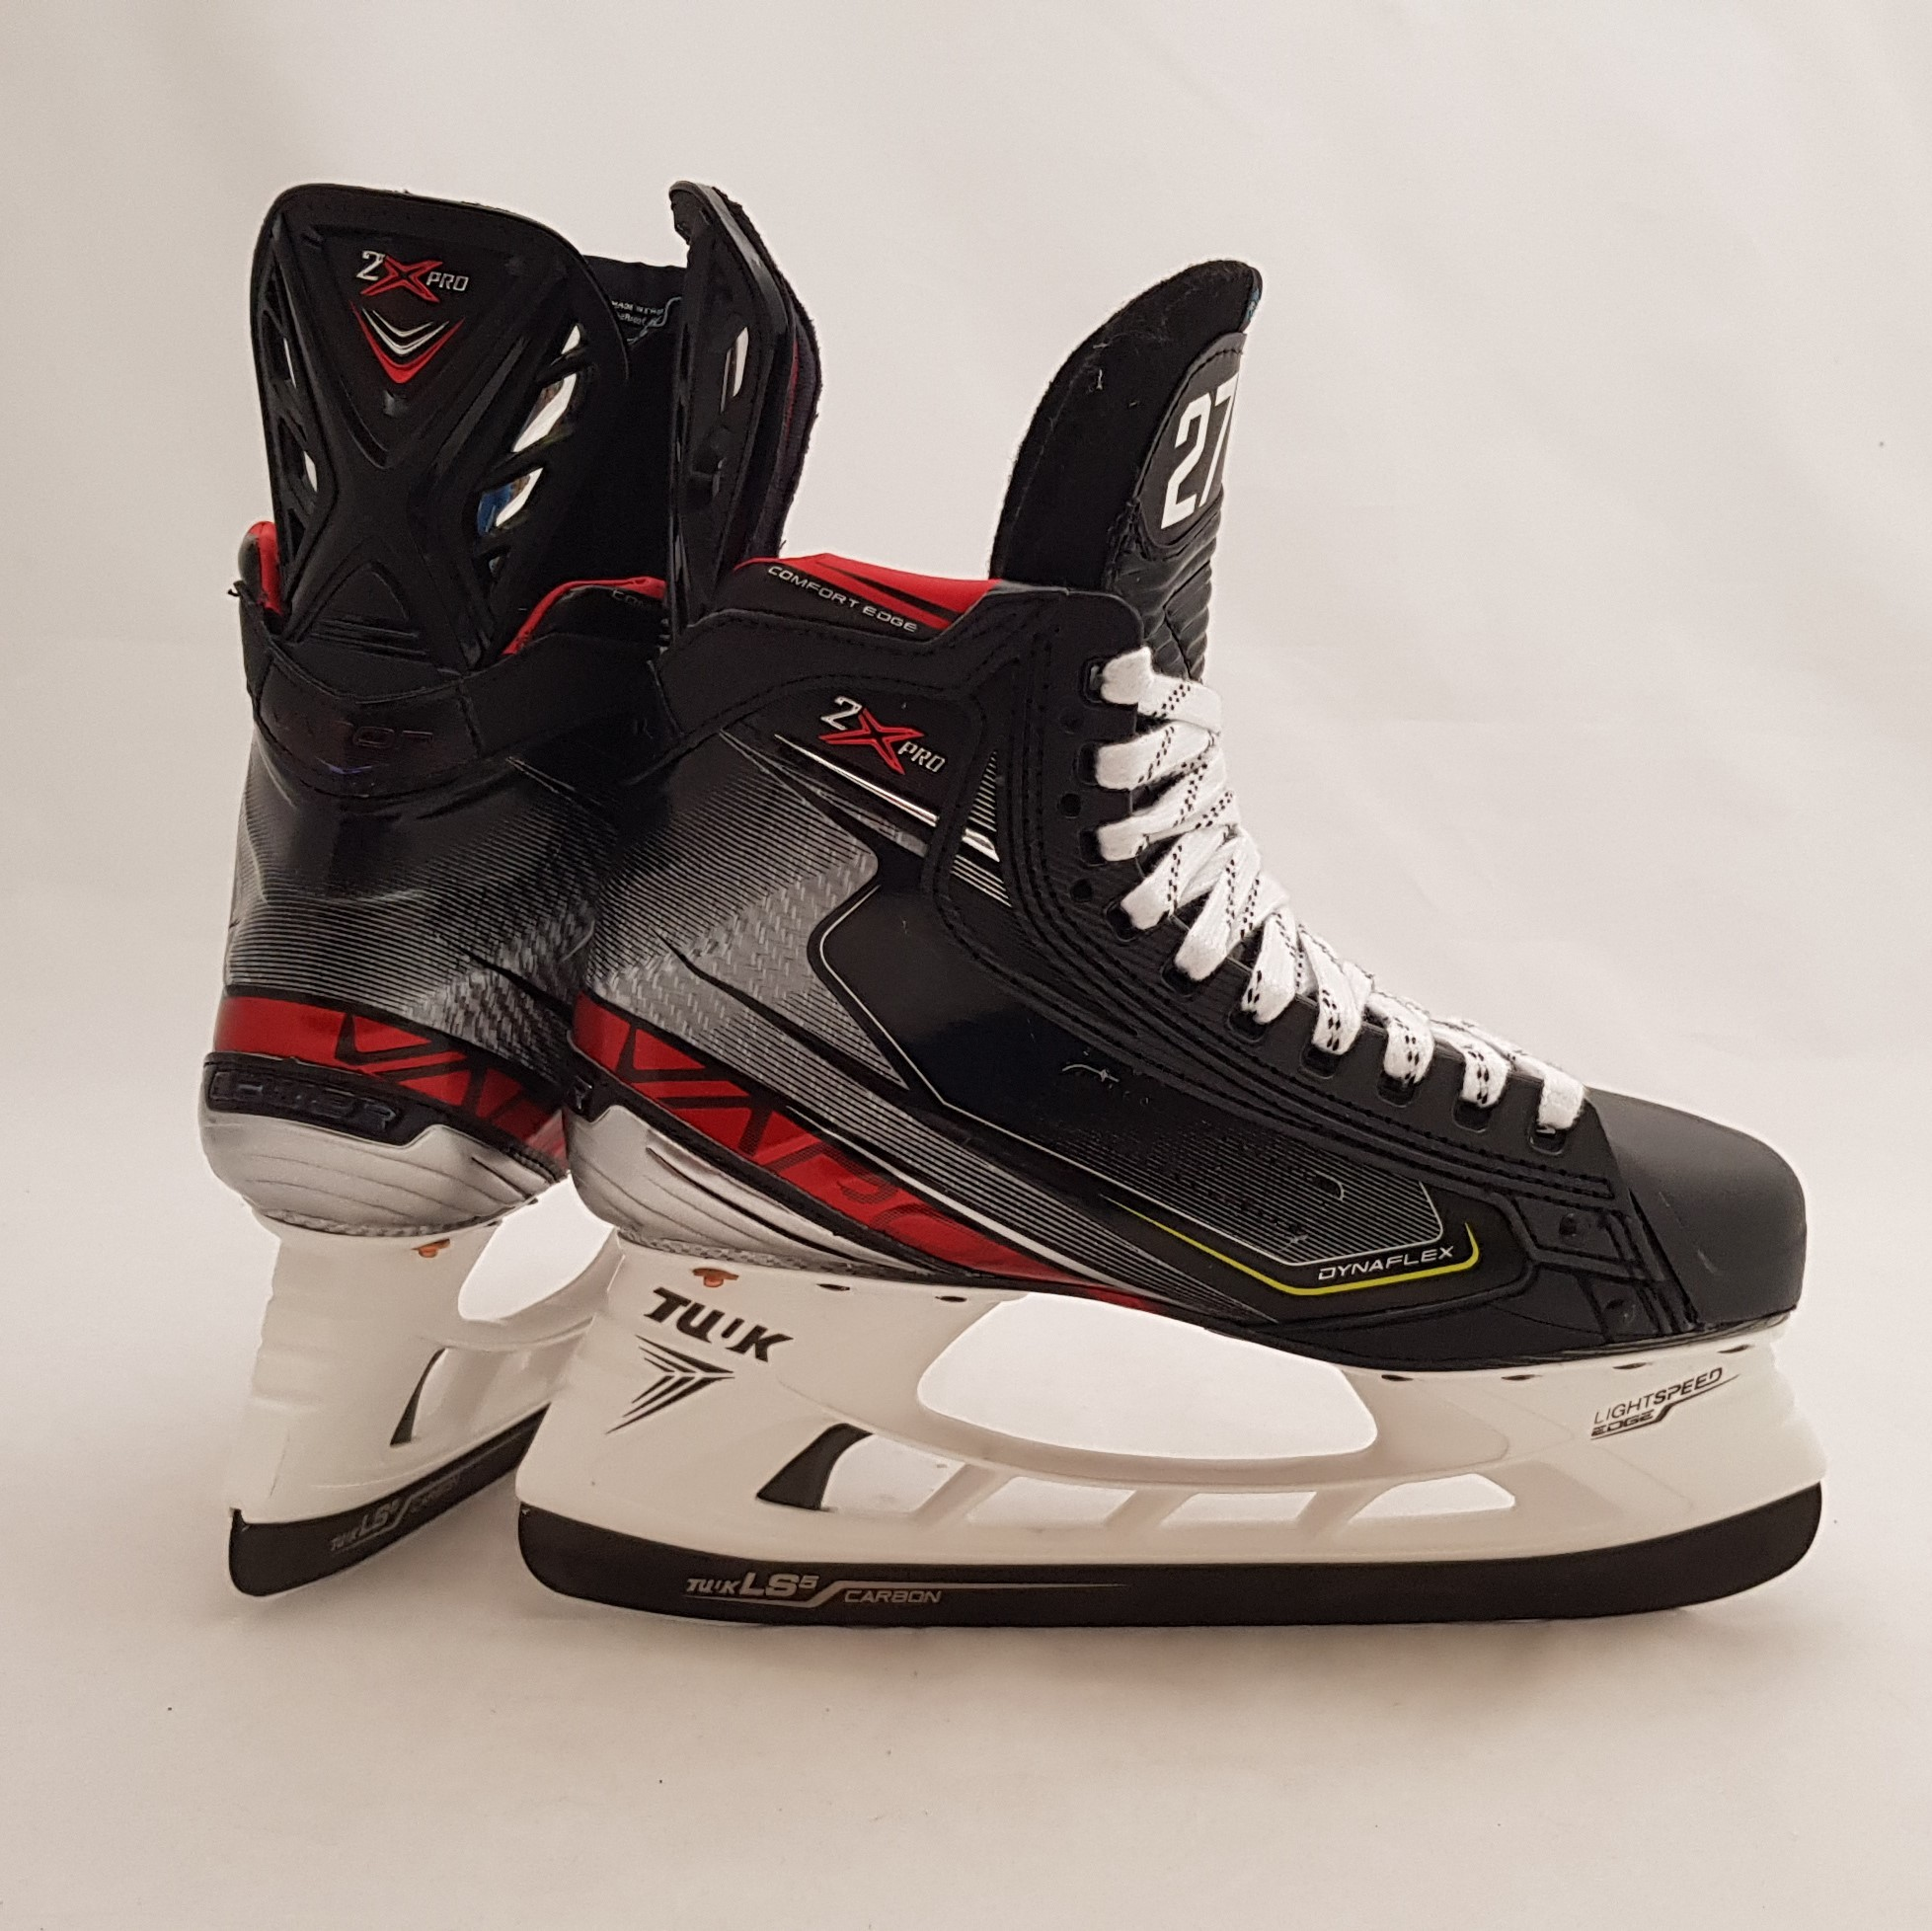 Demo BAUER Vapor 2X Pro S19 PRO STOCK Senior Ice Hockey Skates